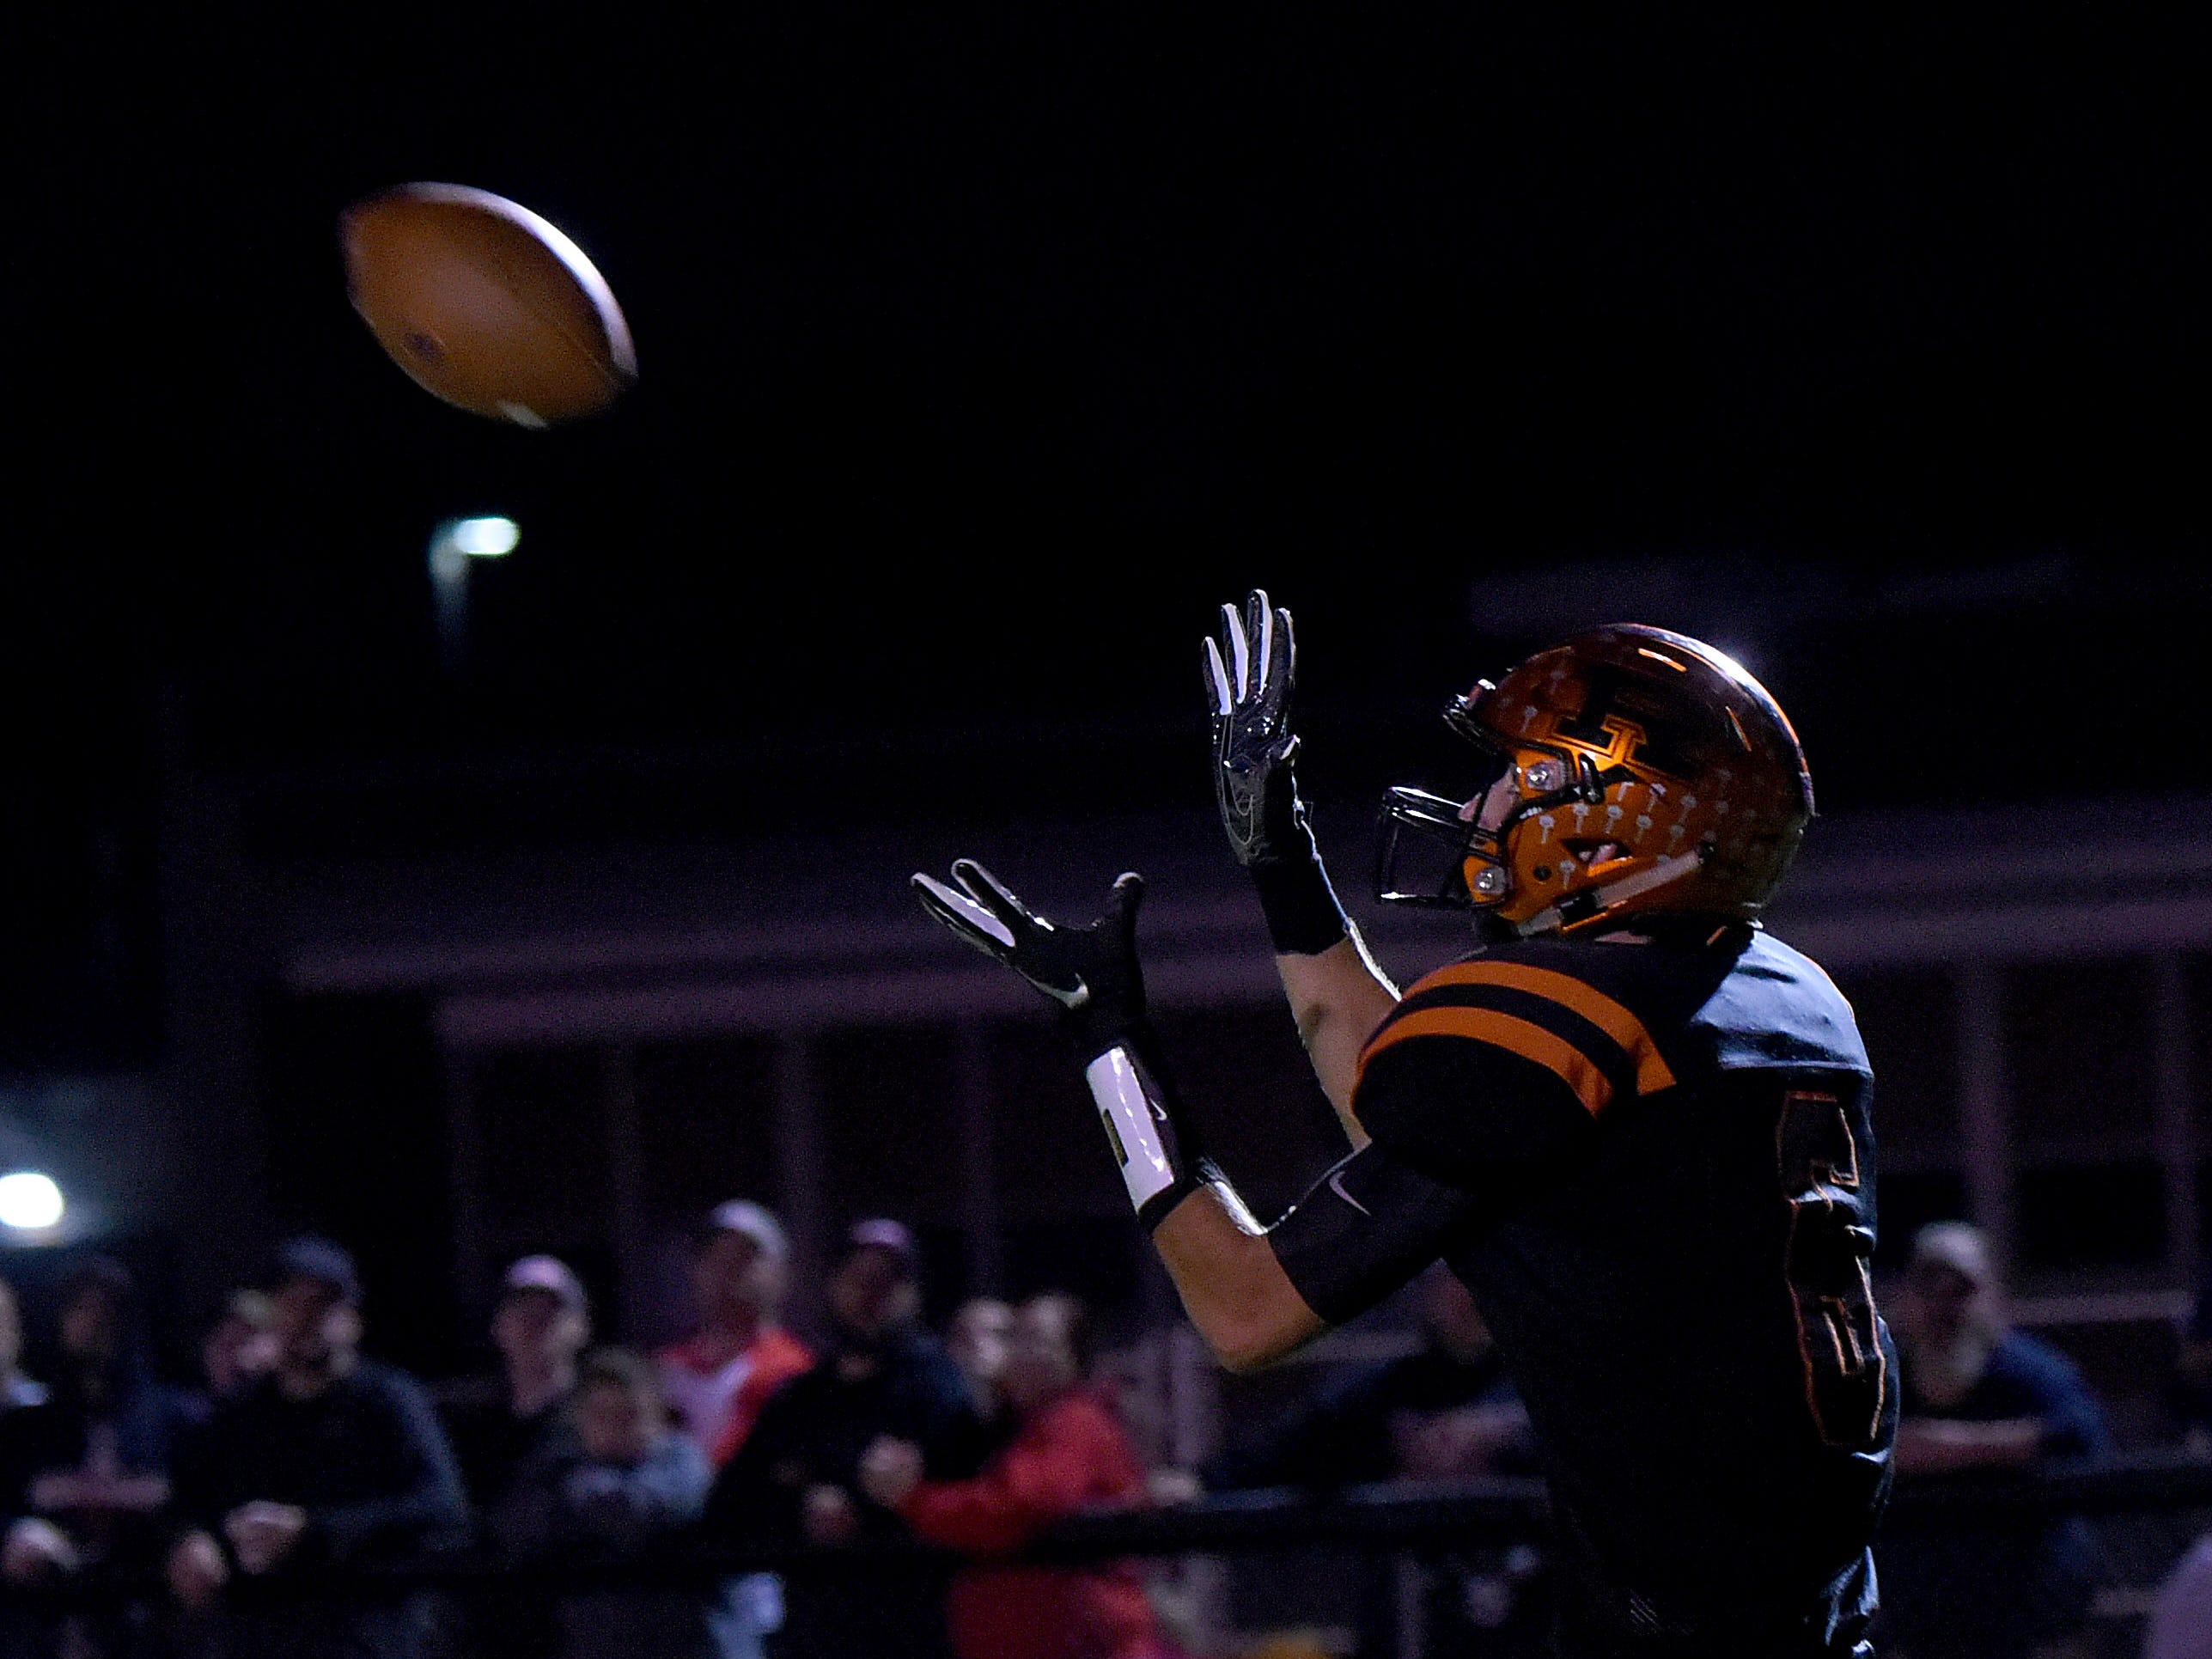 Ridgewood junior wide receiver Connor Kunze catches a touchdown pass during Friday night's game against Indian Valley. The Generals won 34-22.